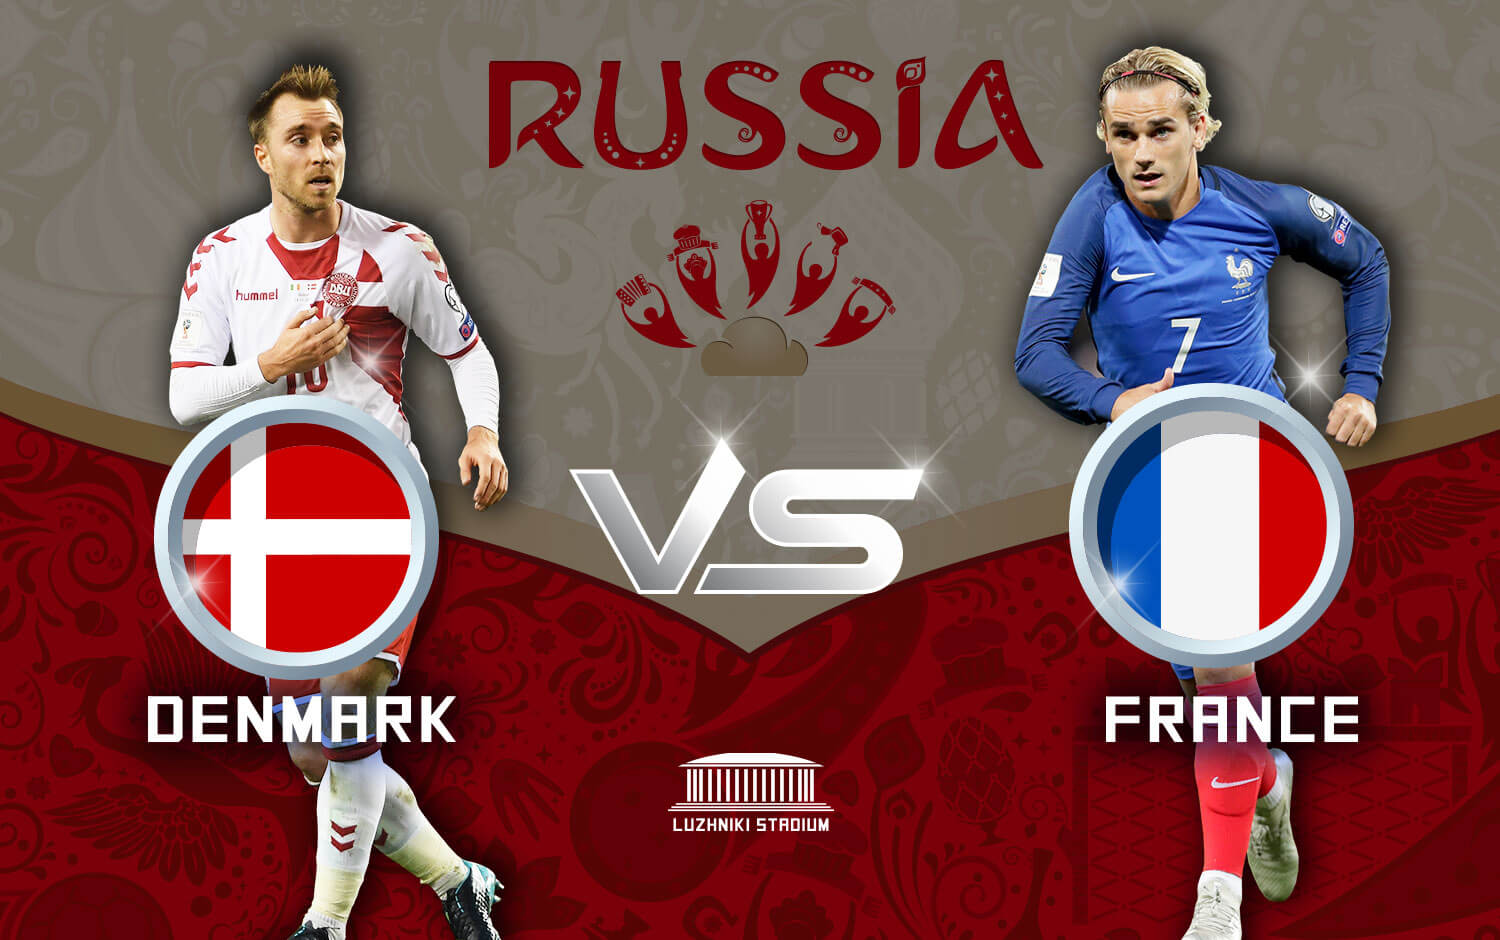 Denmark v France preview: Danes need draw to qualify for last 16